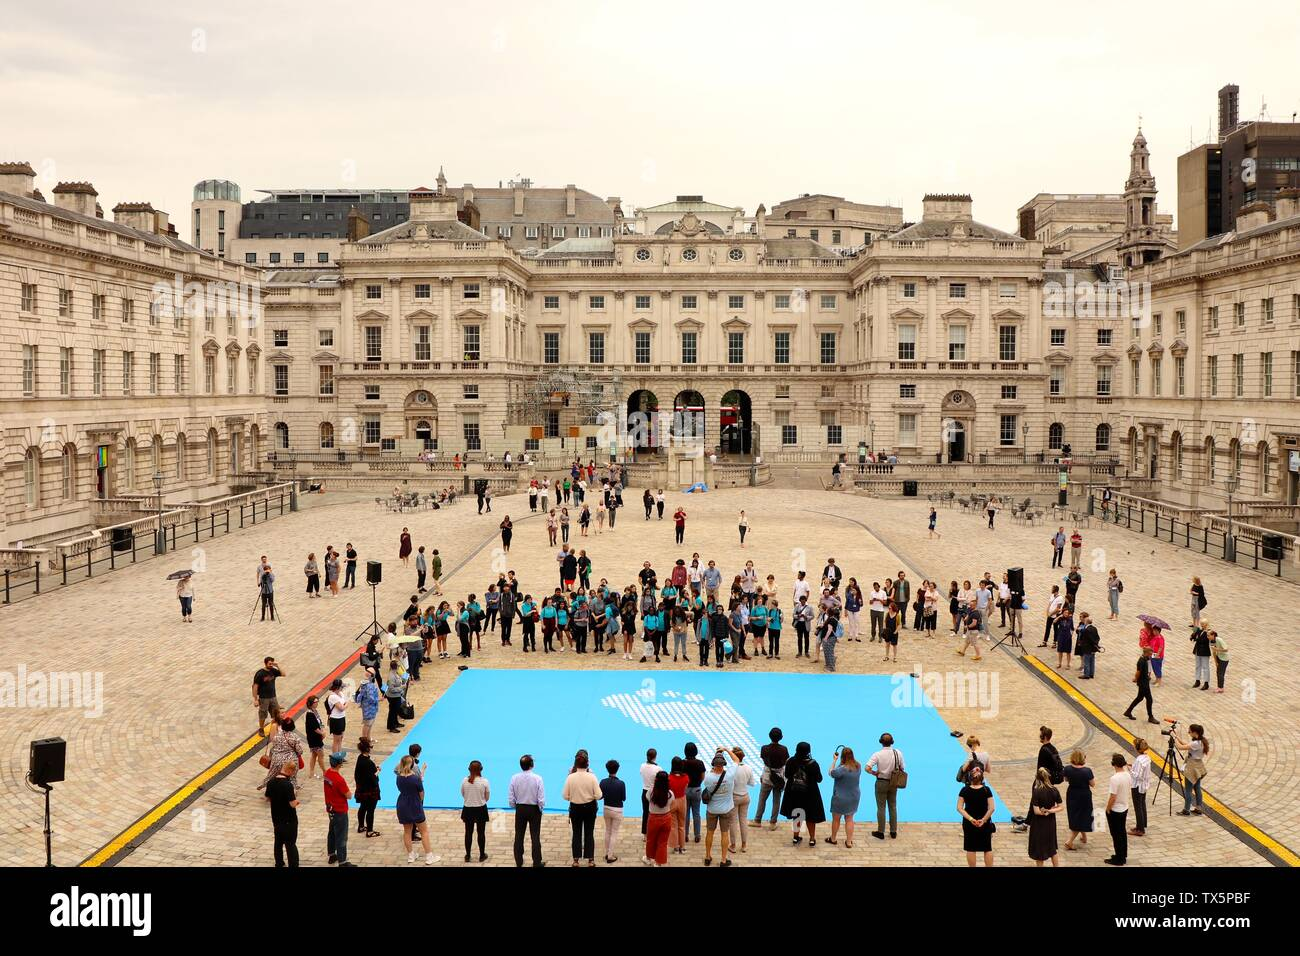 Fly The Flag For Human Rights At Somerset House 24 June 2019 - Stock Image